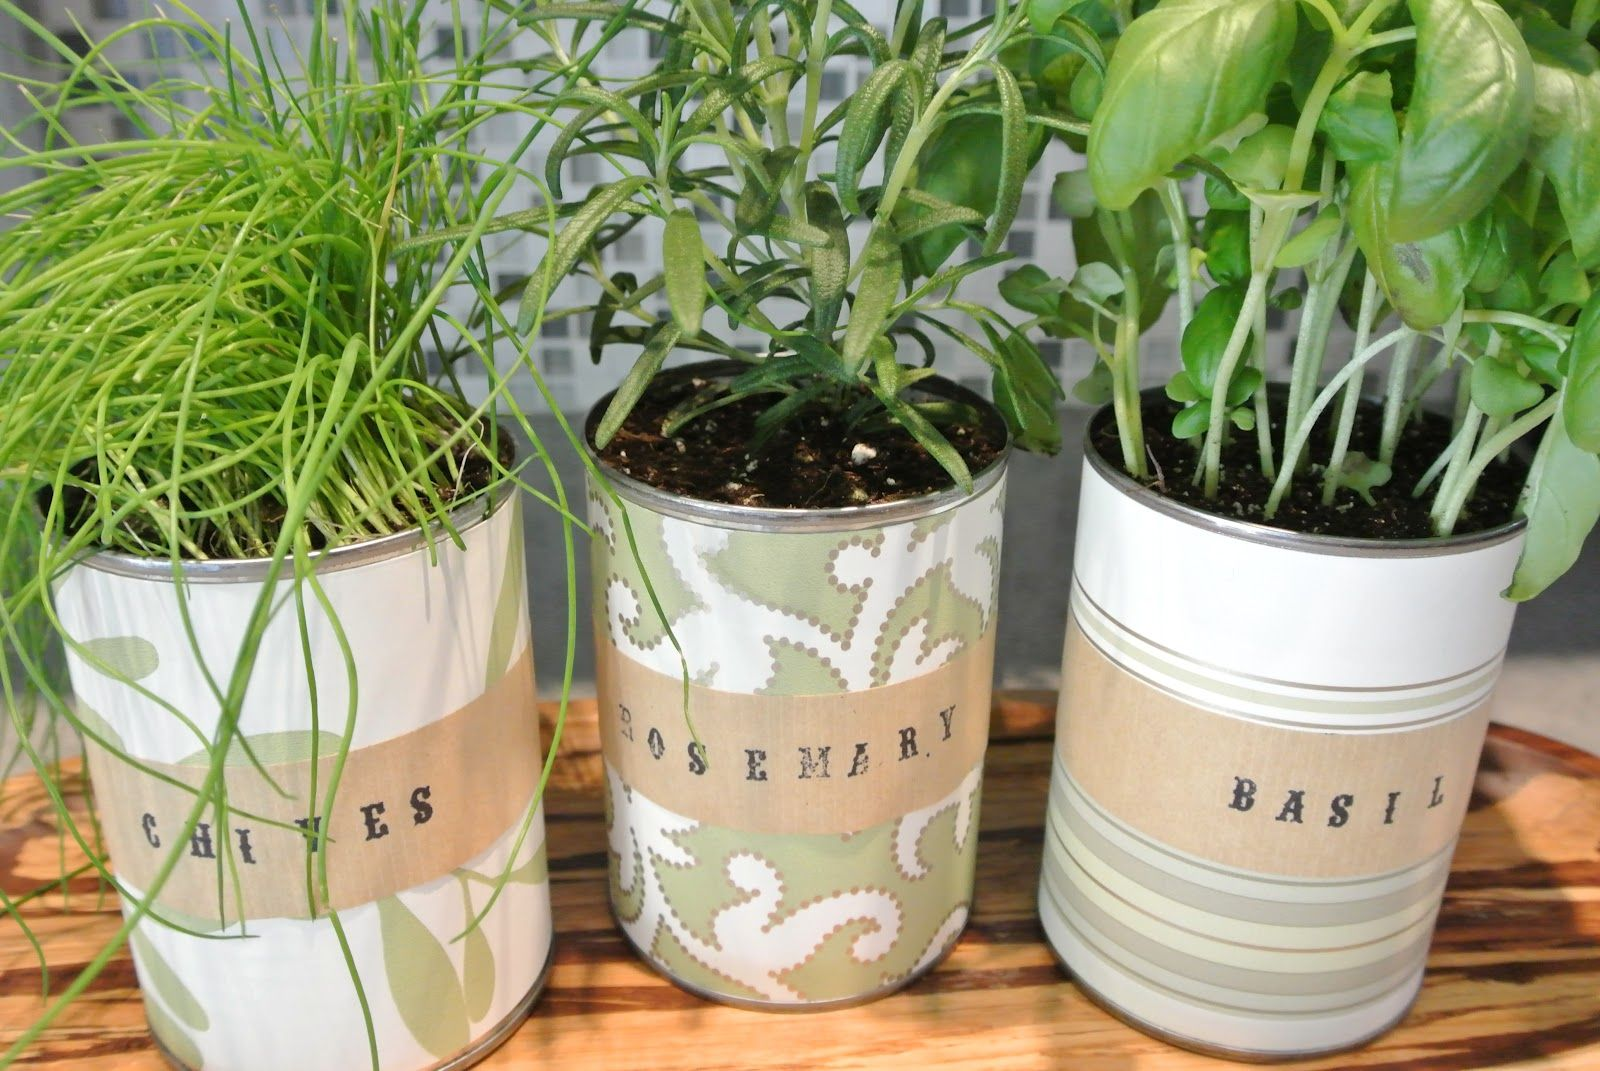 15 indoor herb garden ideas - kitchen herb planters